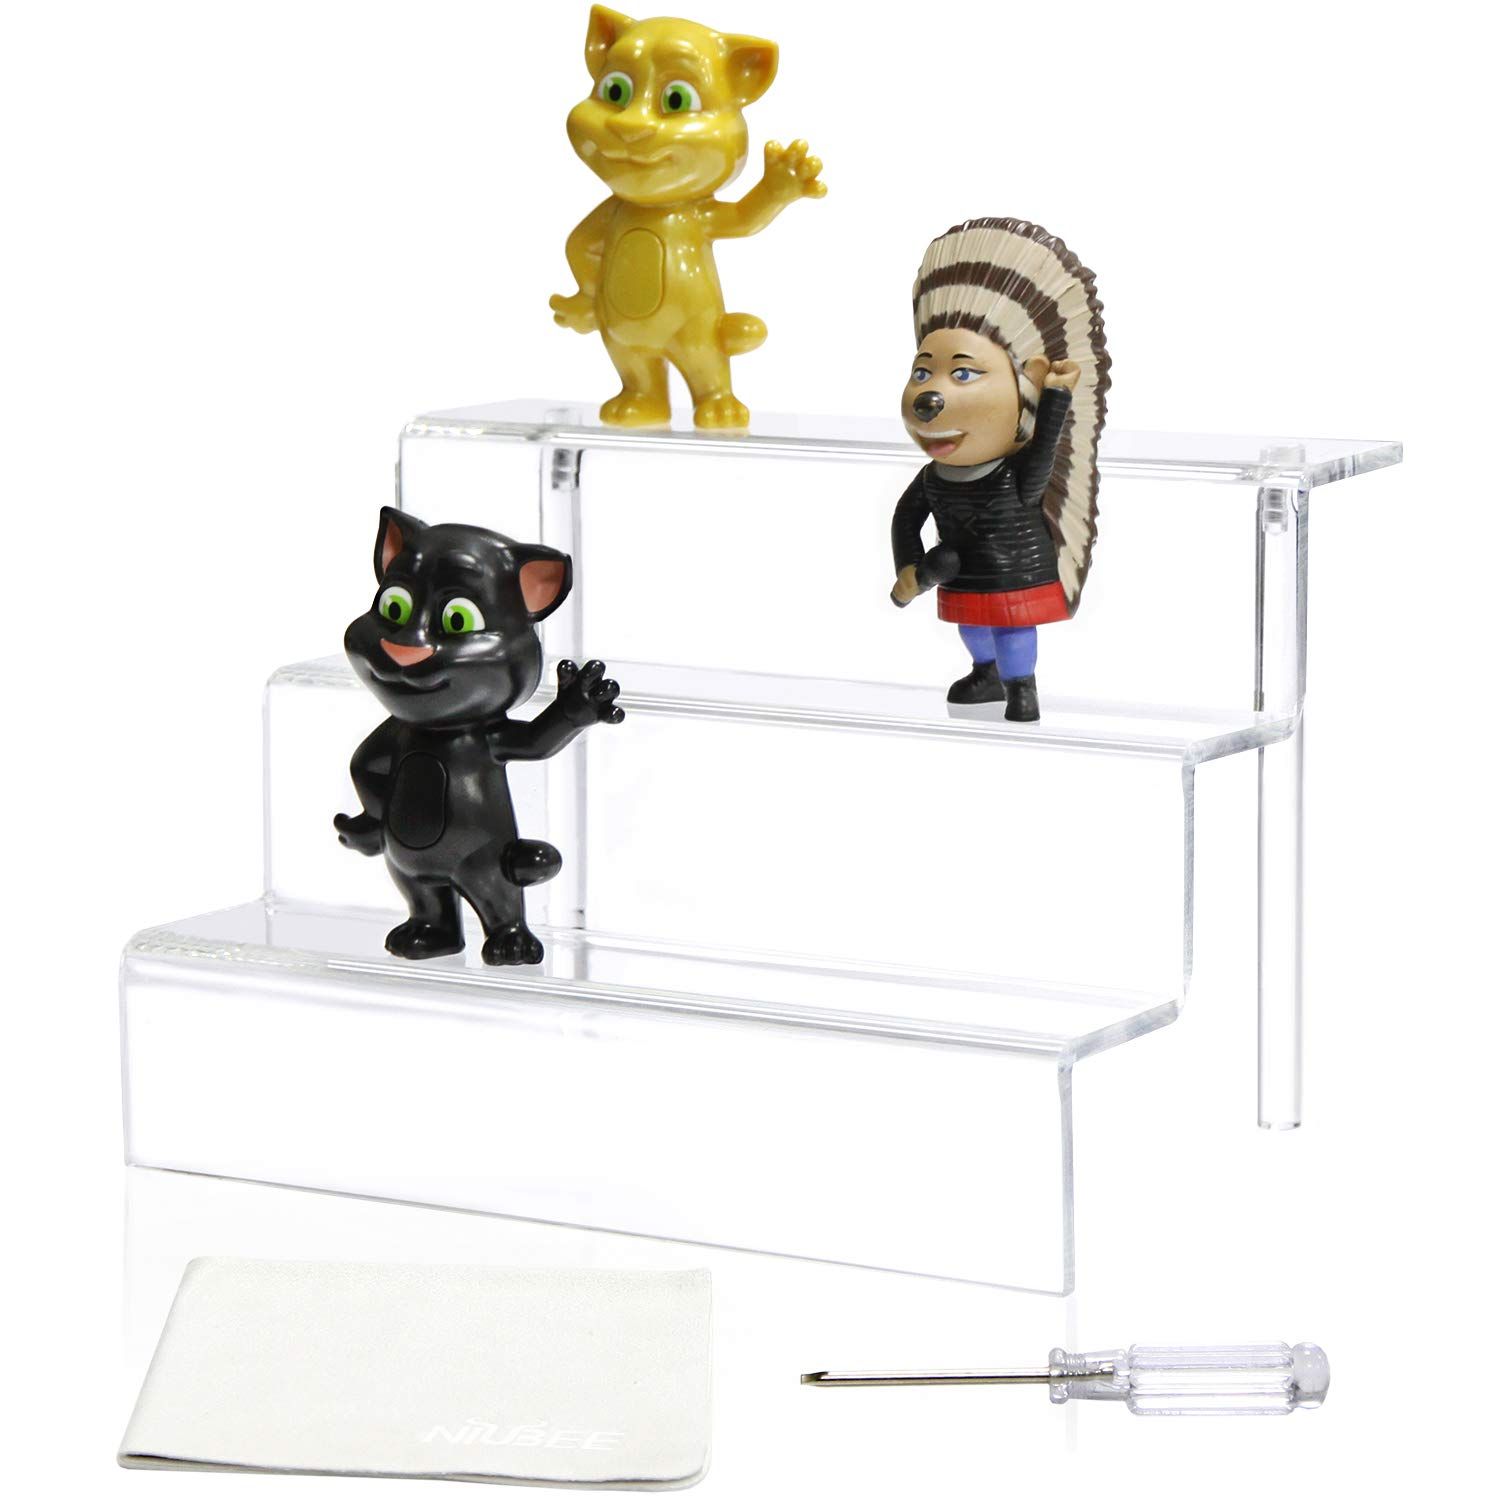 NIUBEE Acrylic Riser Display Shelf for Amiibo Funko POP Figures, Cupcakes Stand for Table,Cabinet, Countertops - 3-Tier, Clear (12×8.75'', 3 Pack)